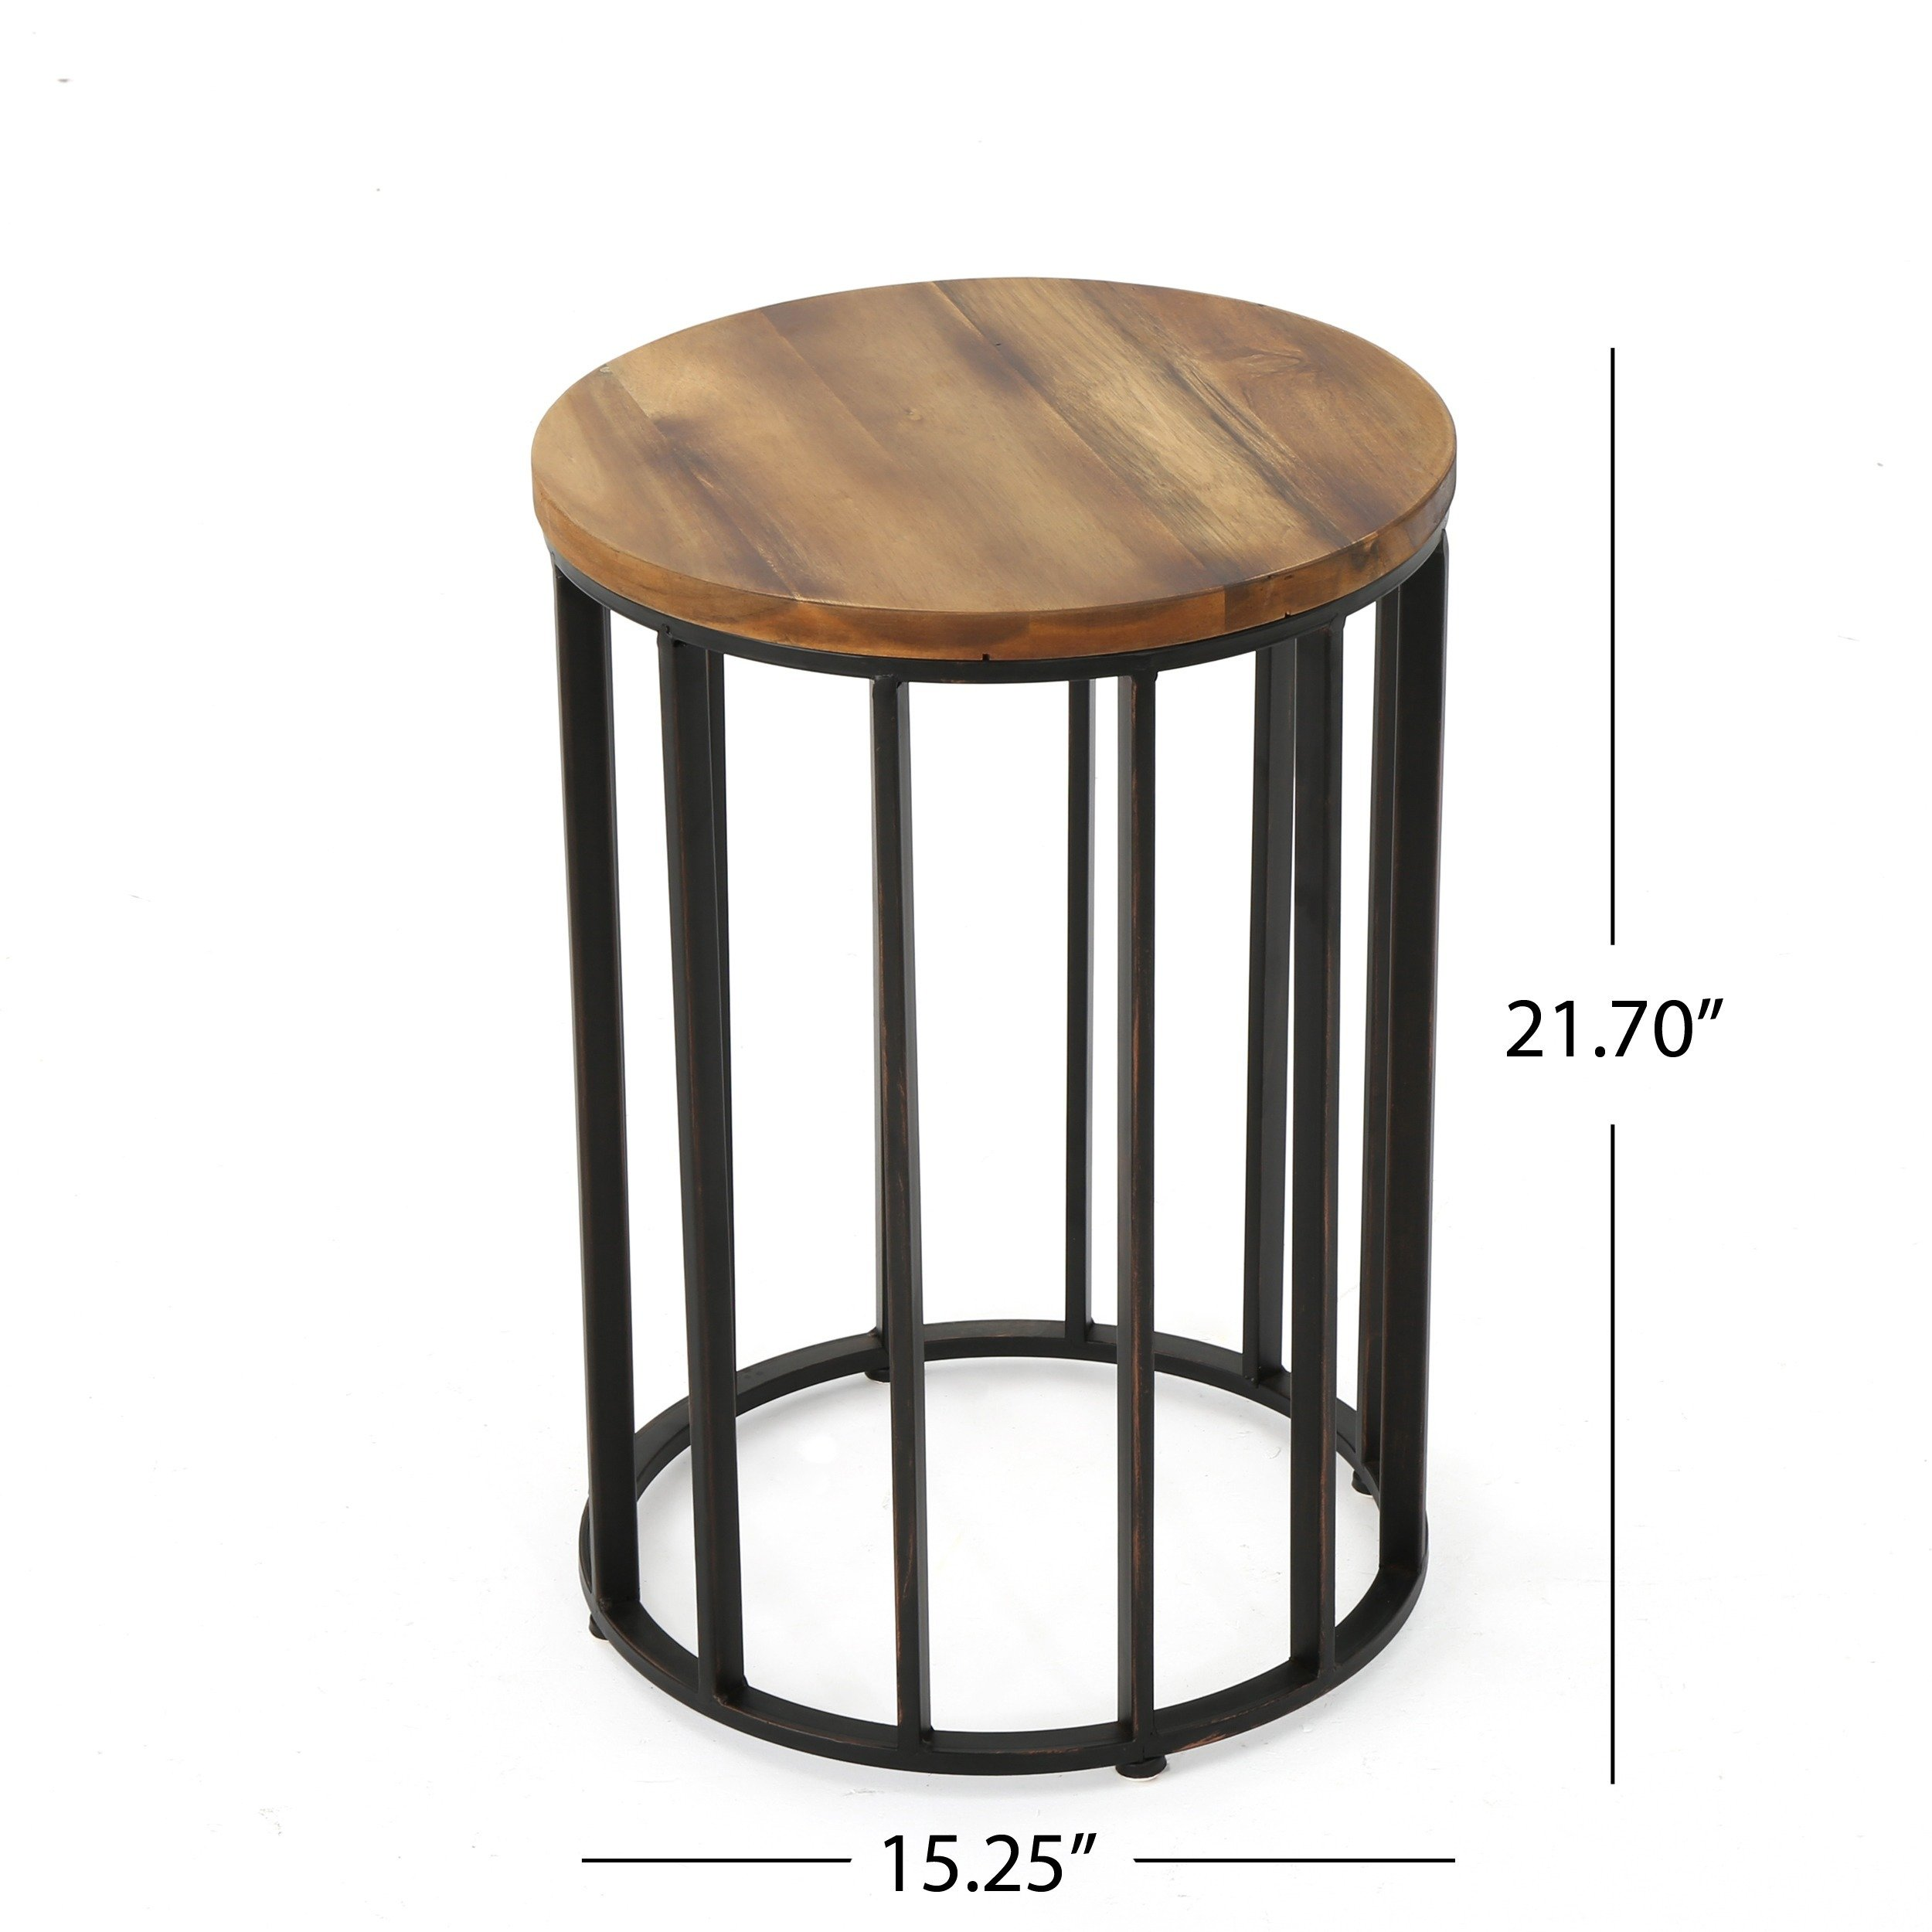 canary outdoor acacia wood round accent table christopher knight home metal and free shipping today little coffee high end furniture storage monarch specialties set computer desk